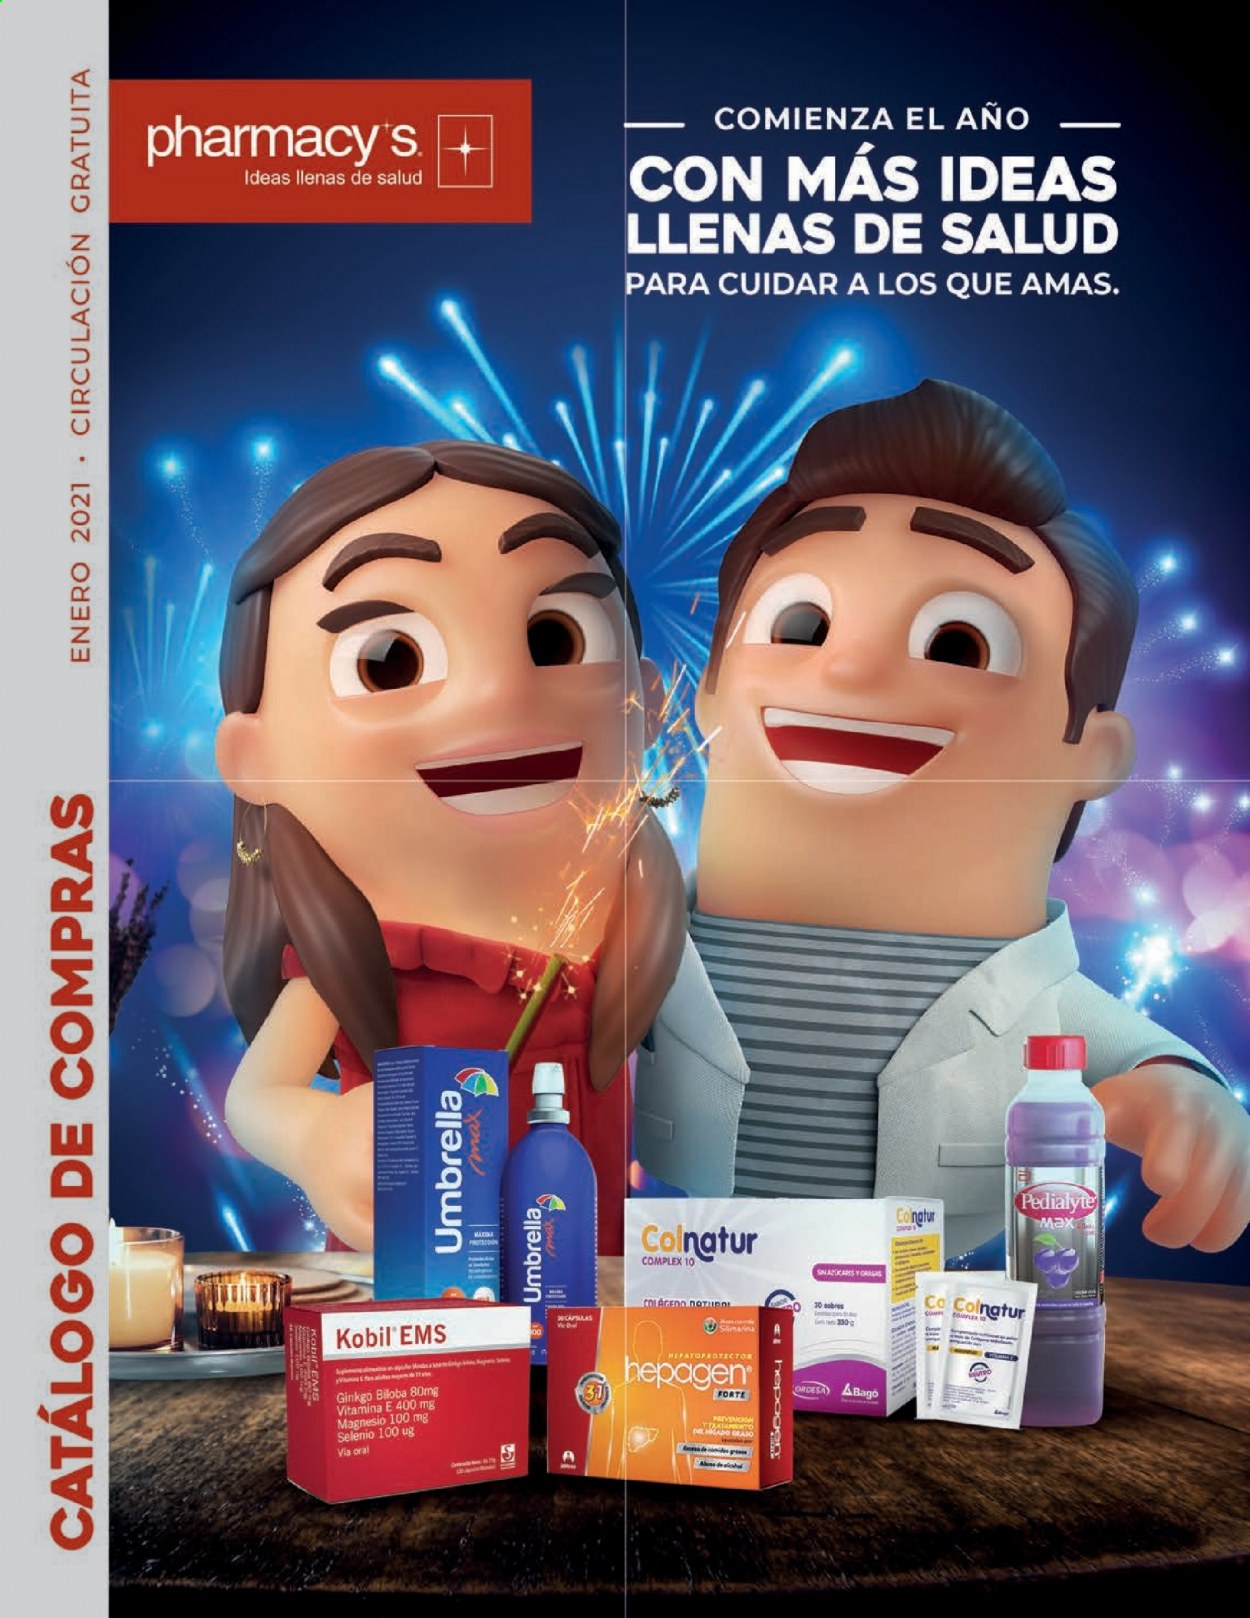 Folleto actual Pharmacy's - 1.1.2021 - 31.1.2021 - Ventas - vitamina e. Página 1.